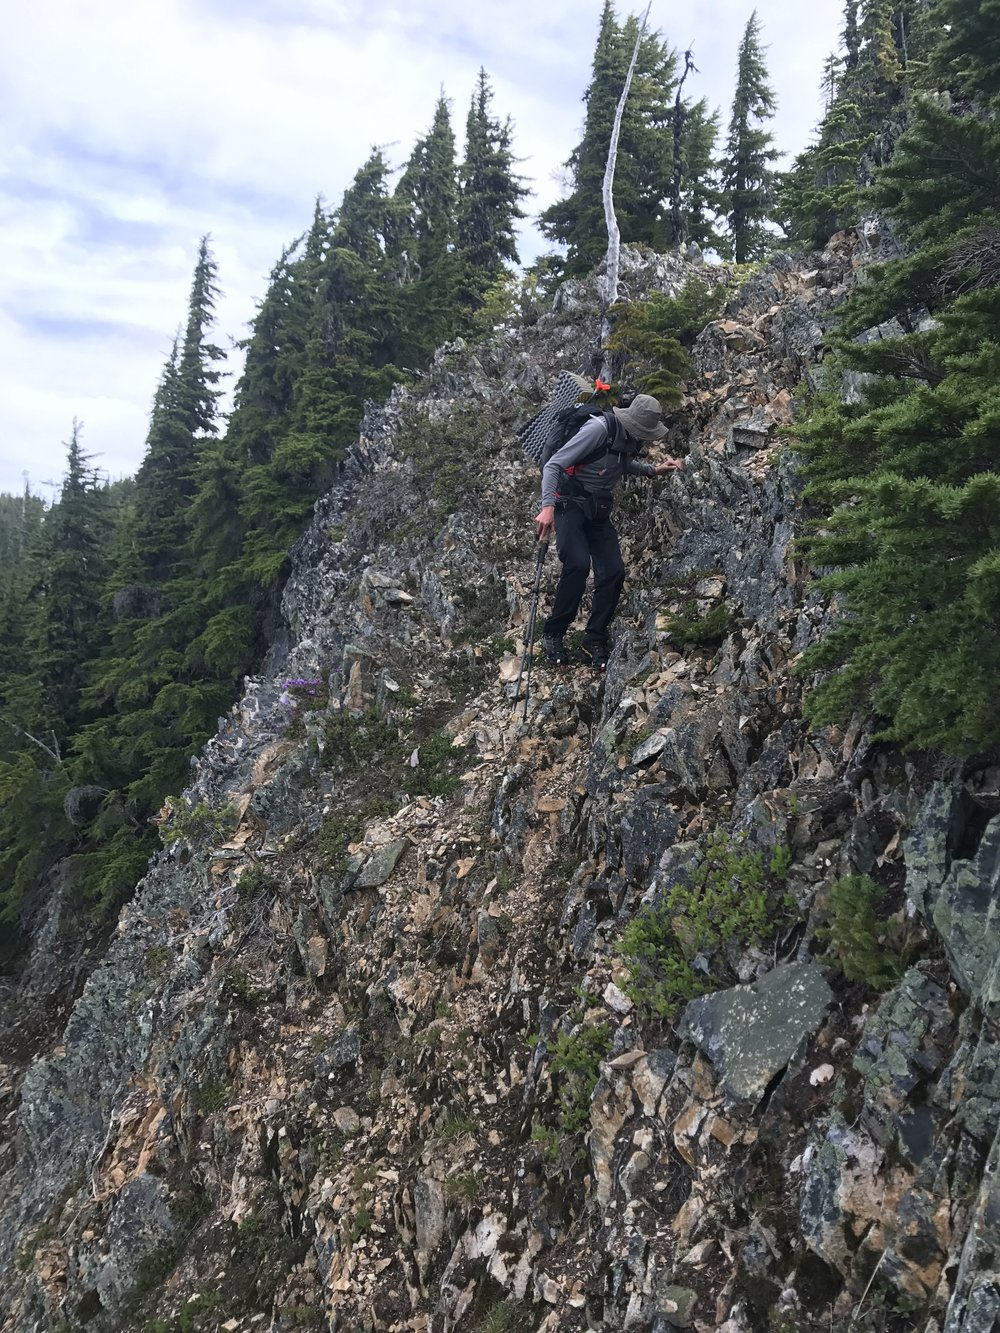 Using poles to cautiously descend a tricky scrambly section.